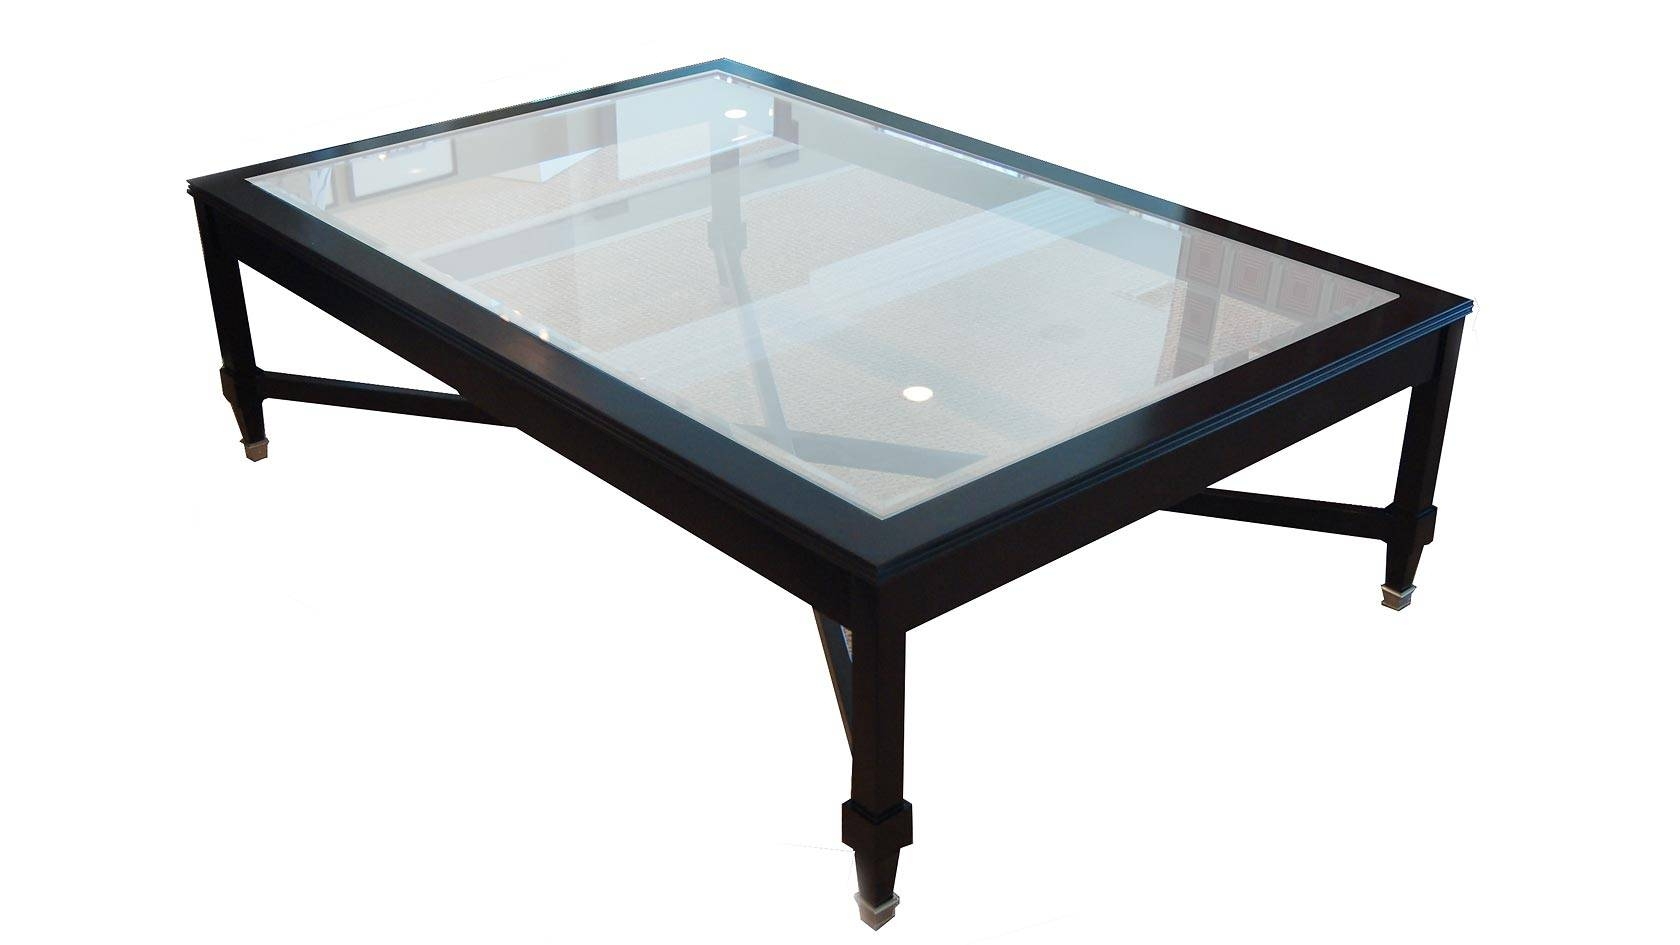 Plush Home Laurier Coffee Table With Glass Top regarding Dark Wood Coffee Tables With Glass Top (Image 23 of 30)